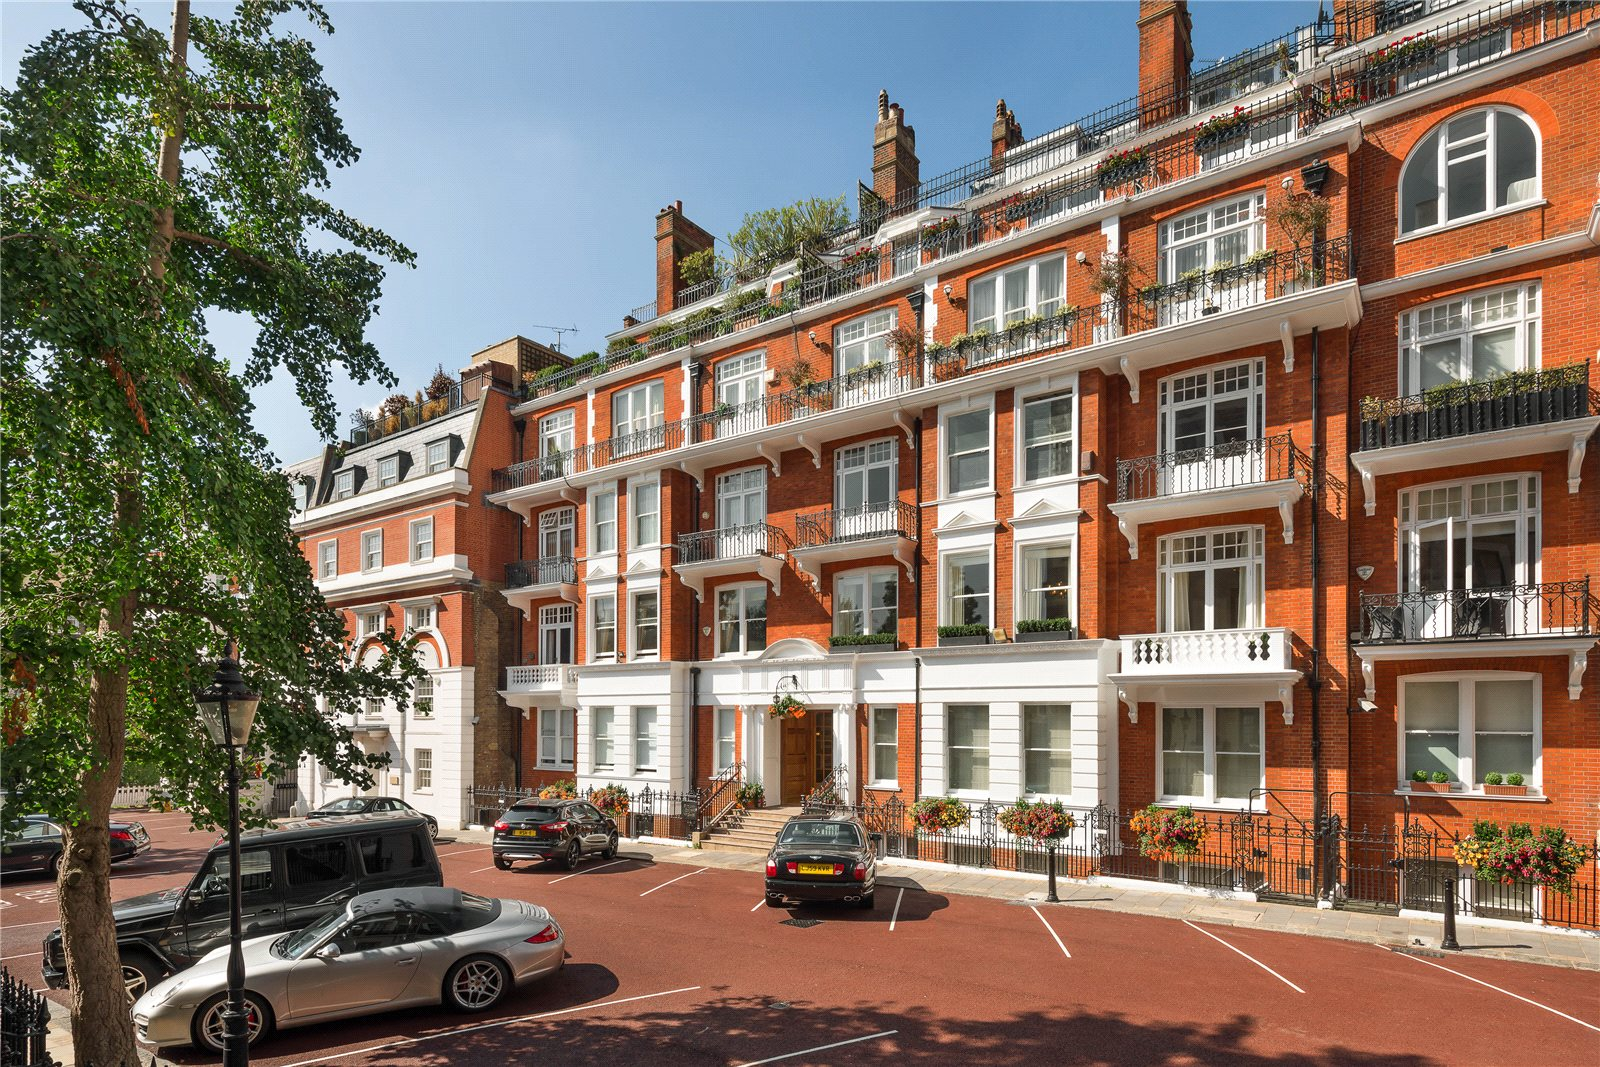 Apartments / Residences for Sale at Rutland Court, London, SW7 London, England